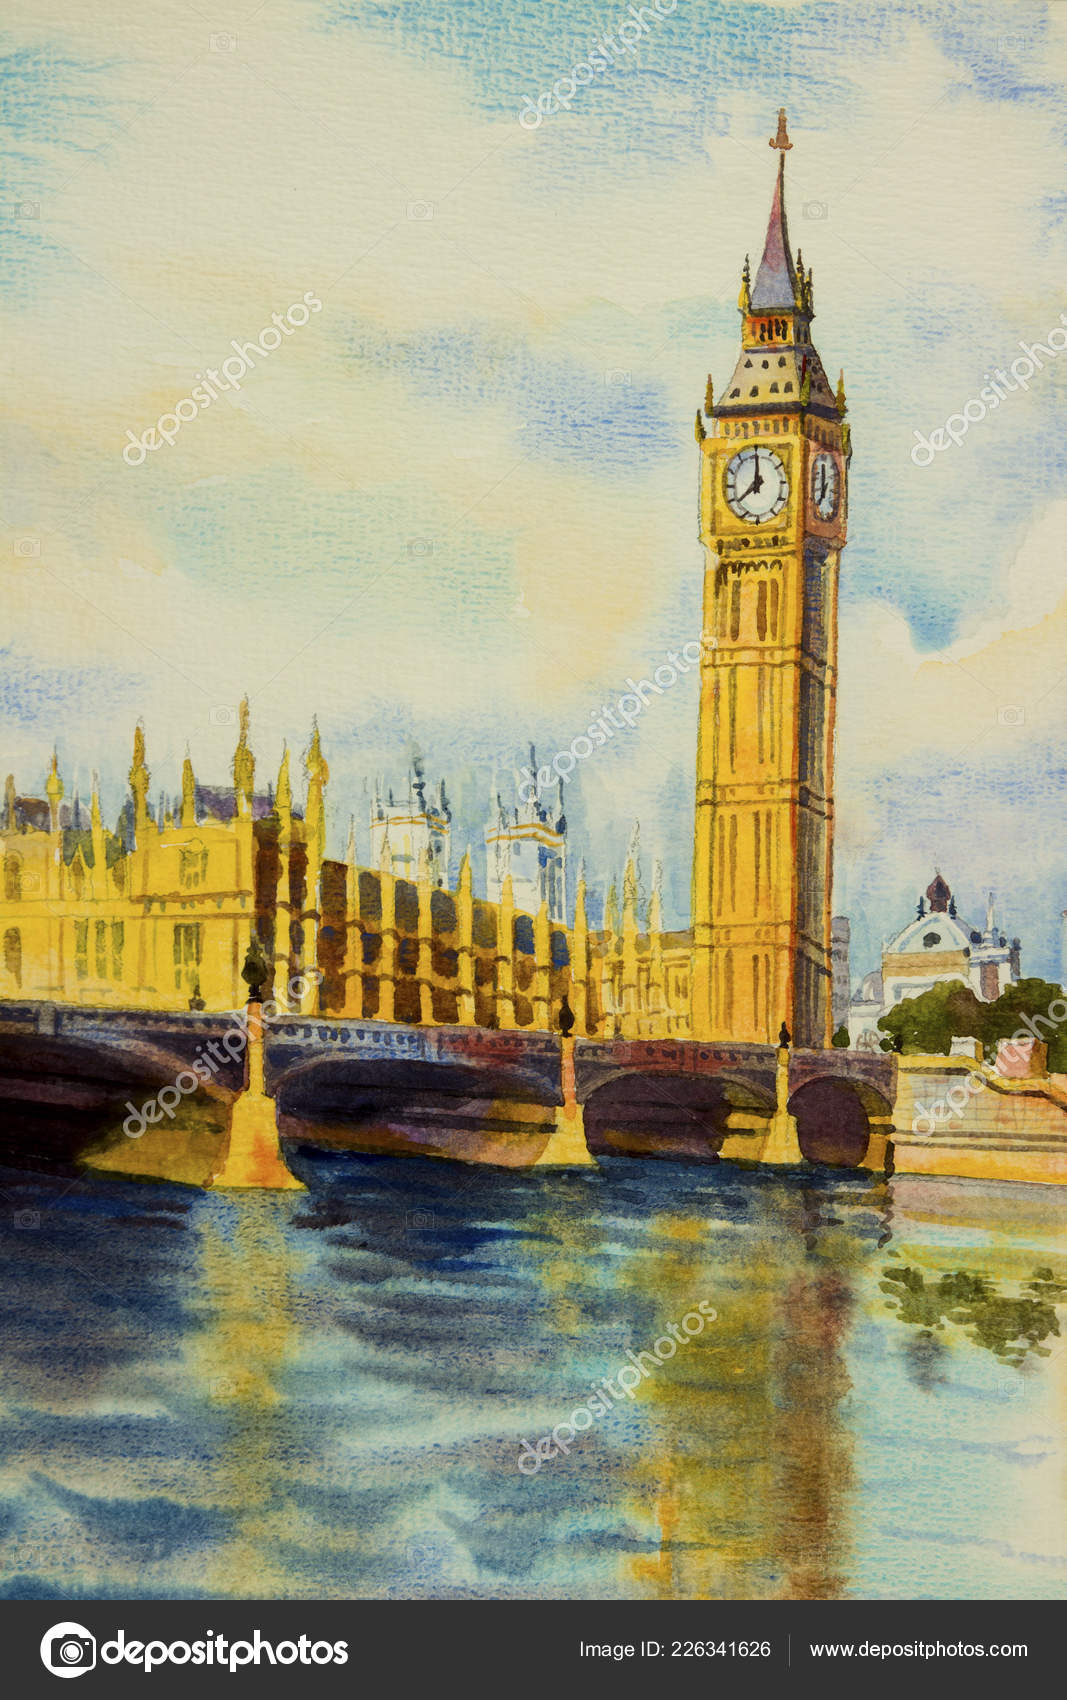 London Big Ben Painting